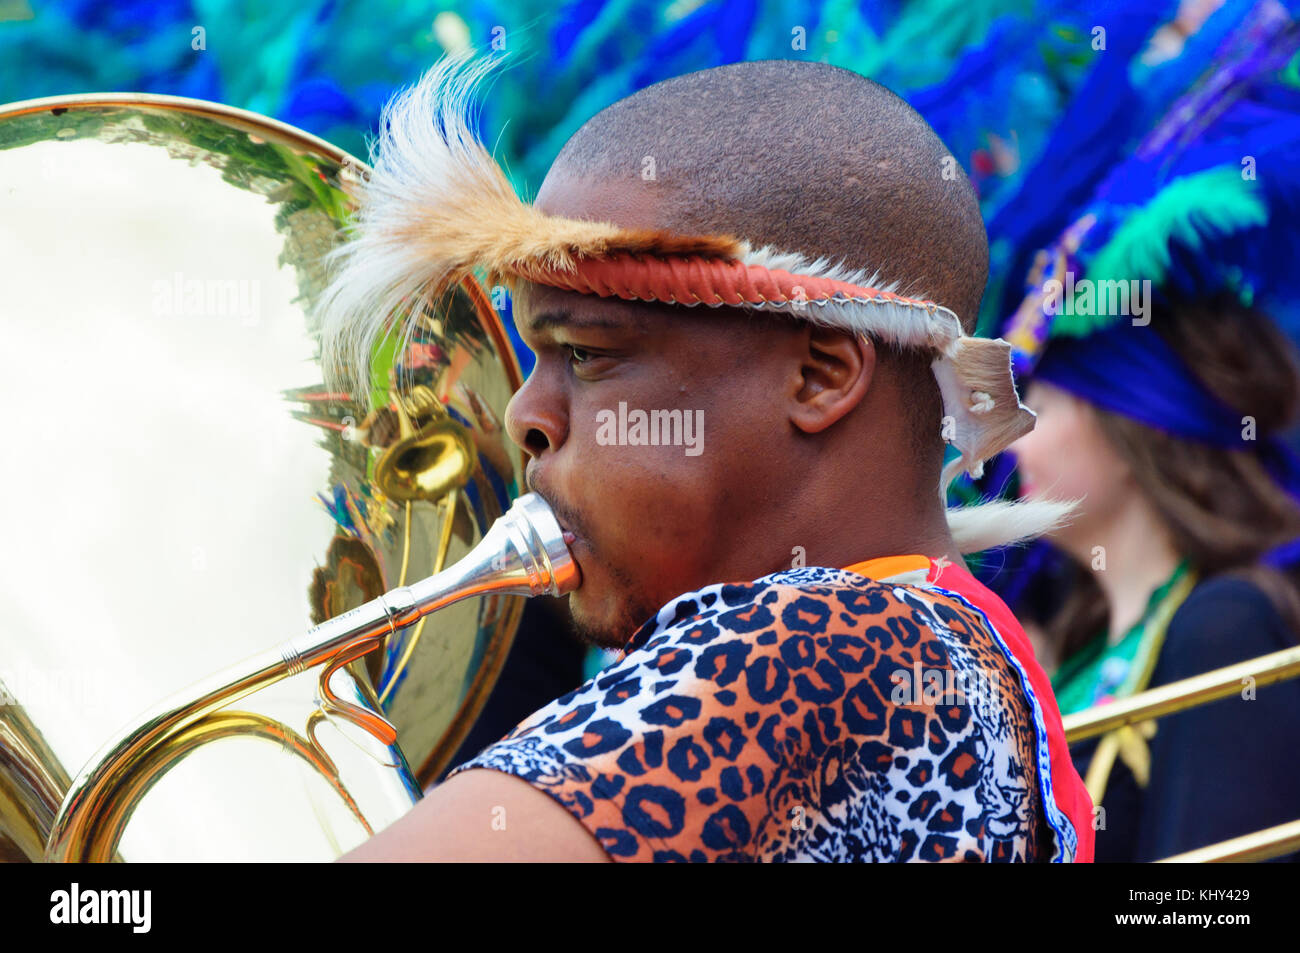 Male musician wearing feathered headgear and playing a tuba in the Carnival of The Edinburgh Jazz and Blues Festival - Stock Image